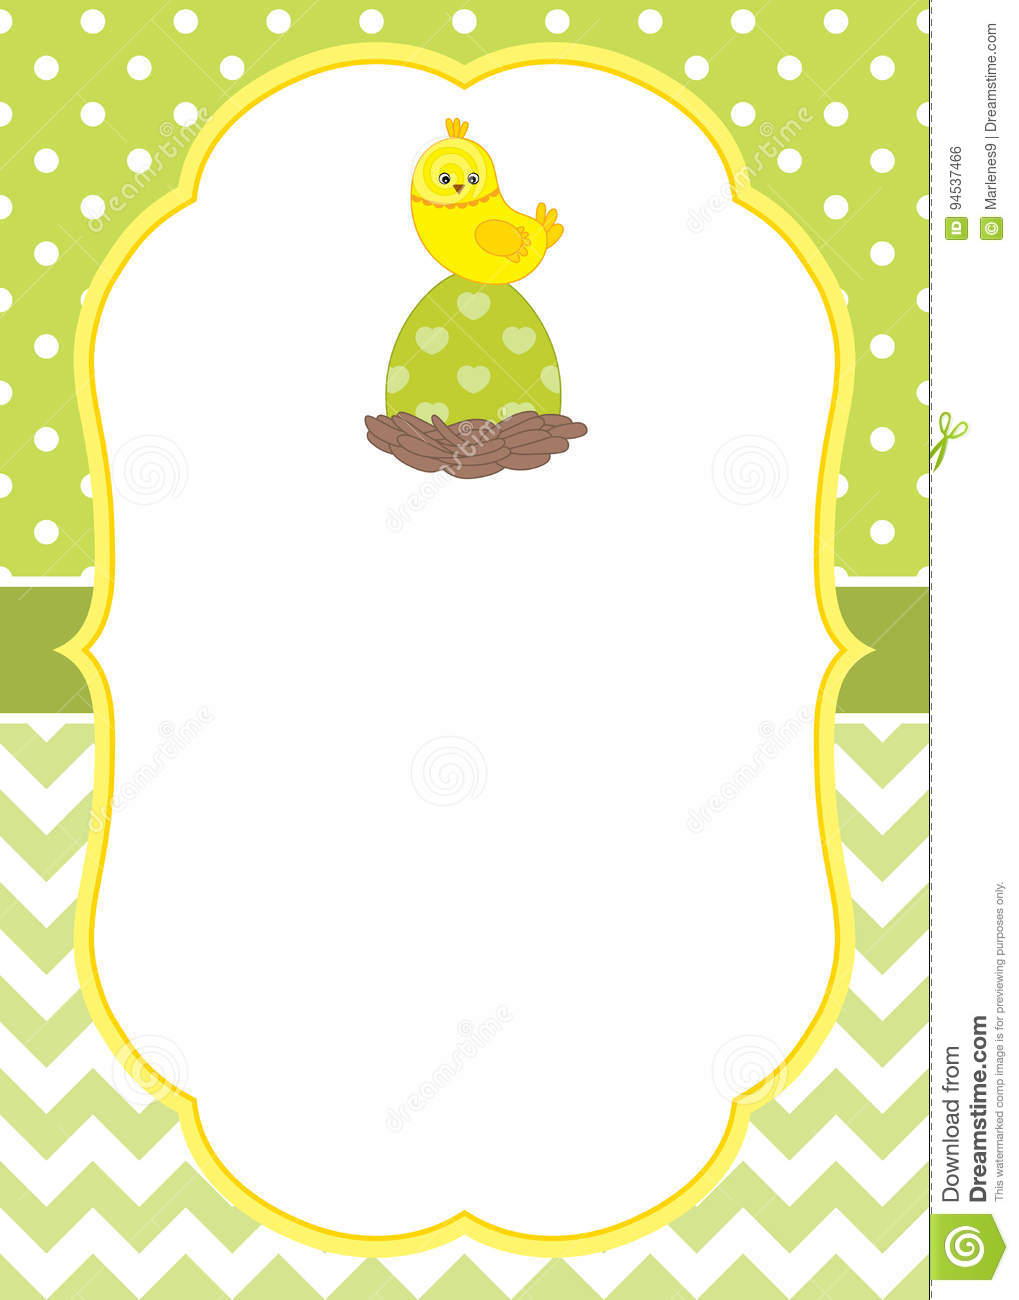 Vector Card Template With A Cute Chick On Polka Dot And Chevron